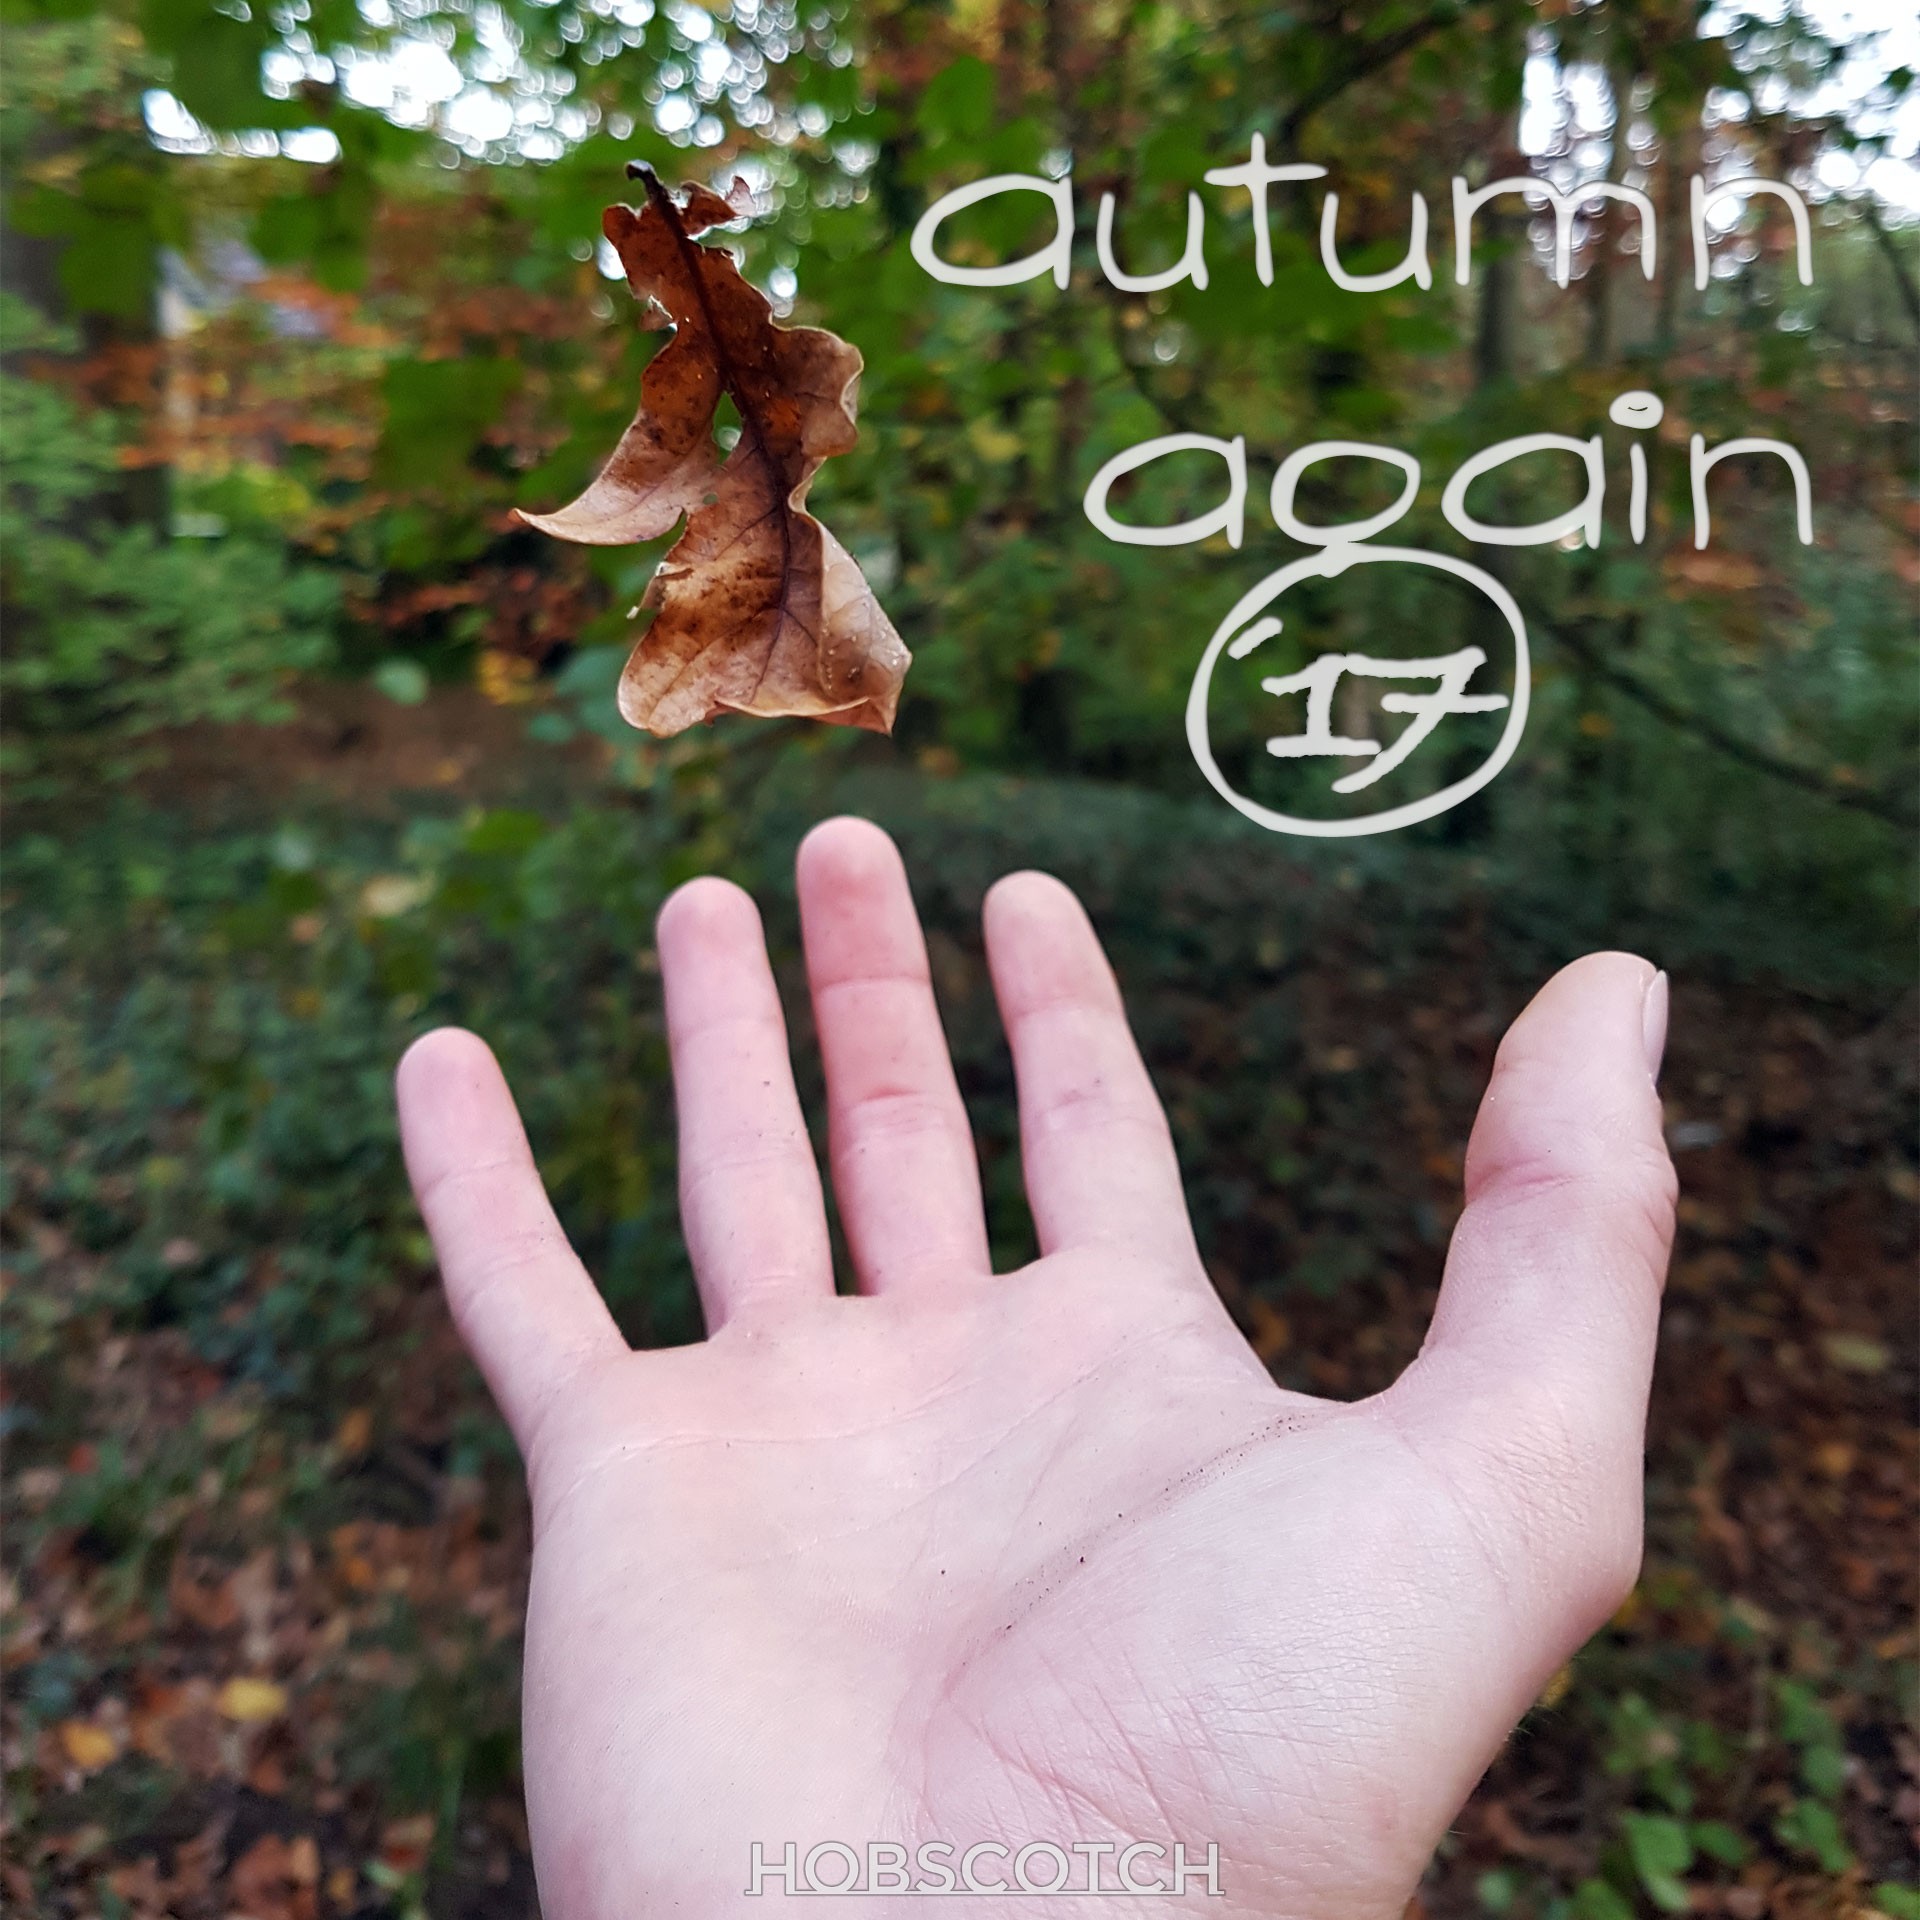 Spotify Playlist: Autumn again '17